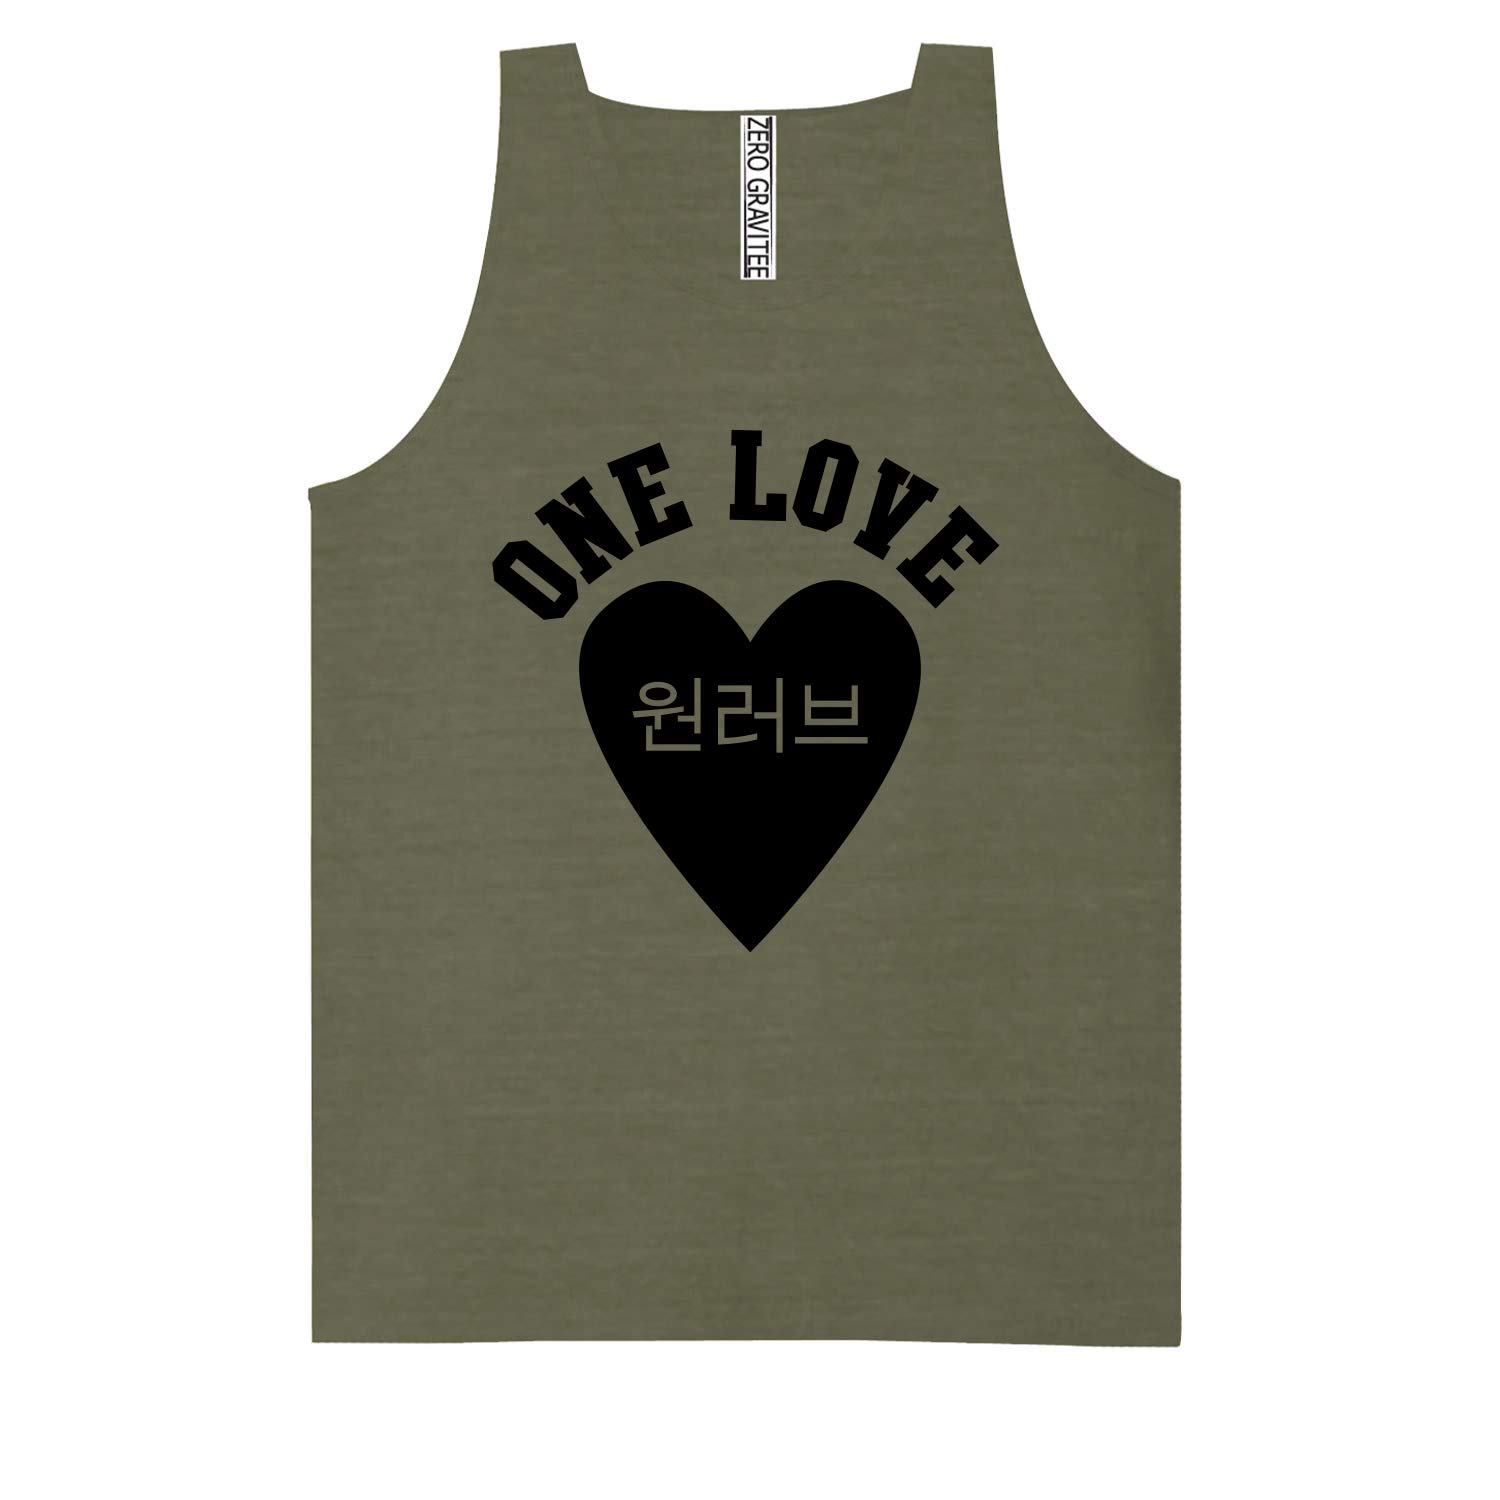 Korean One Love Adult Pigment Dye Tank Top in Smoke Grey - XX-Large